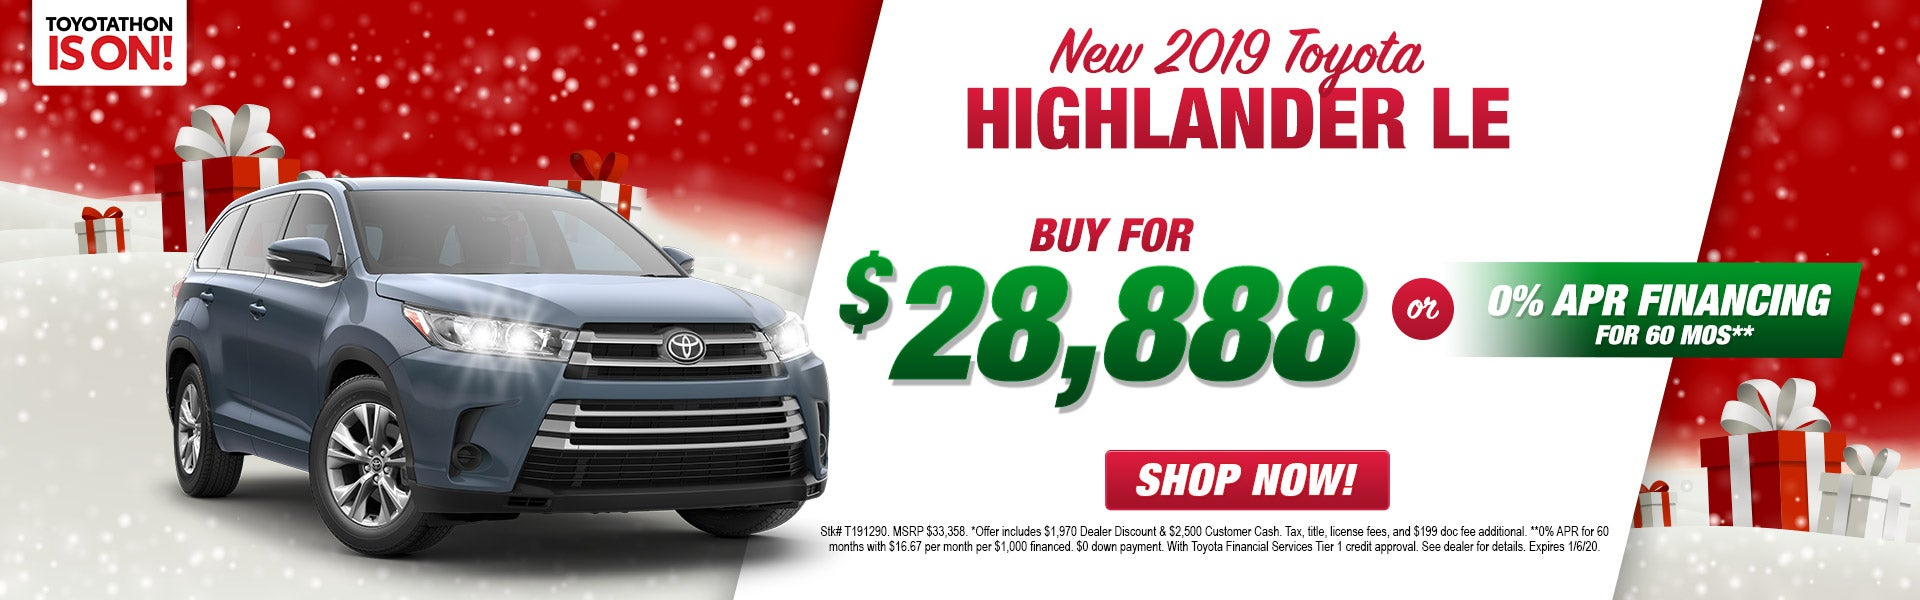 Toyota Financing Deals >> 2019 Toyota Highlander Indianapolis In Andy Mohr Toyota Avon